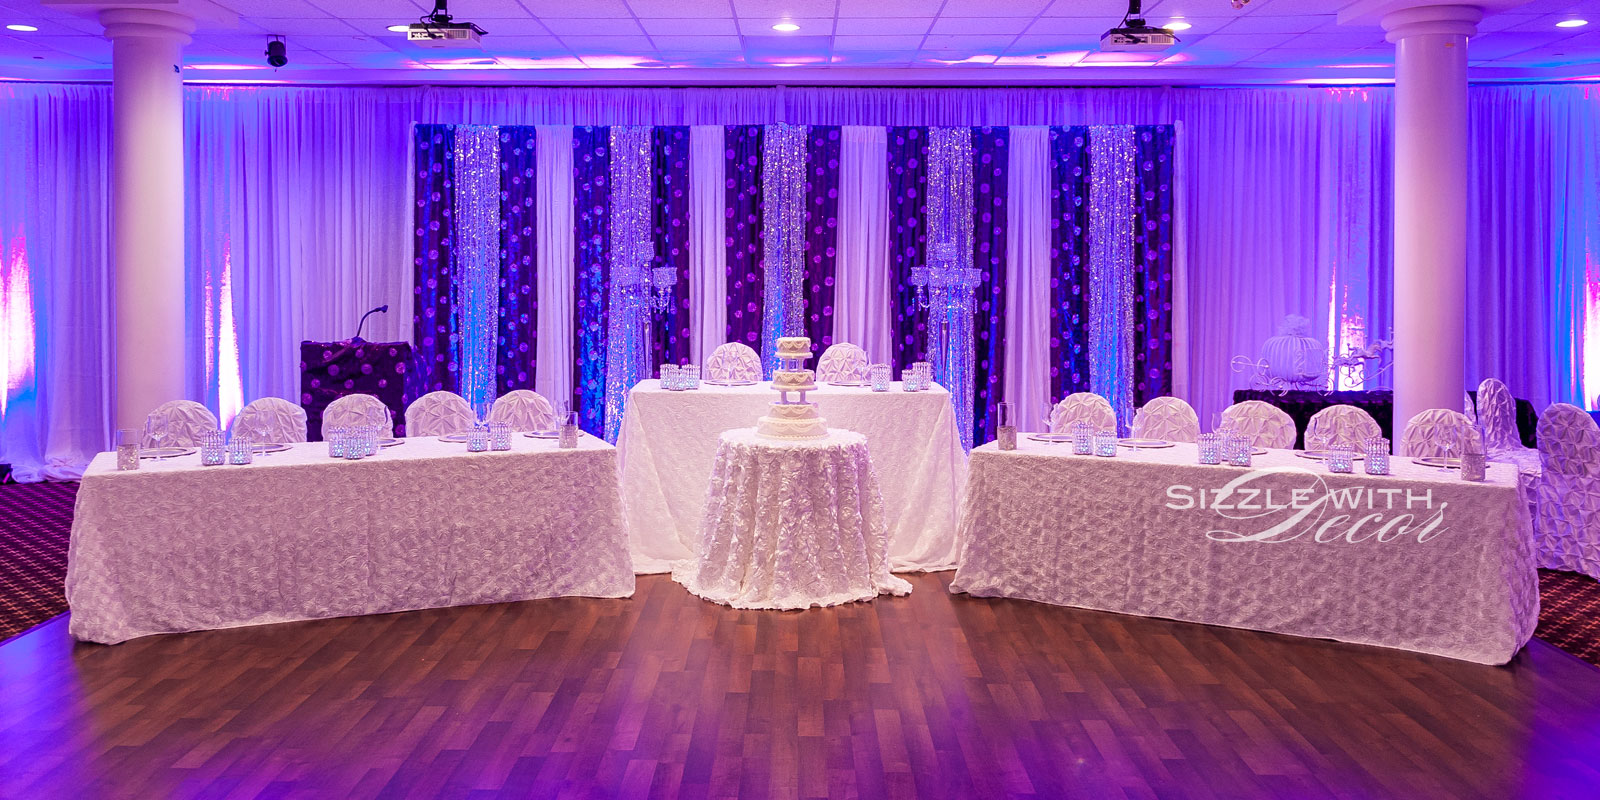 Sizzle with decor wedding and event decor ottawa sliderimagemarconi sliderimagemarconi junglespirit Choice Image